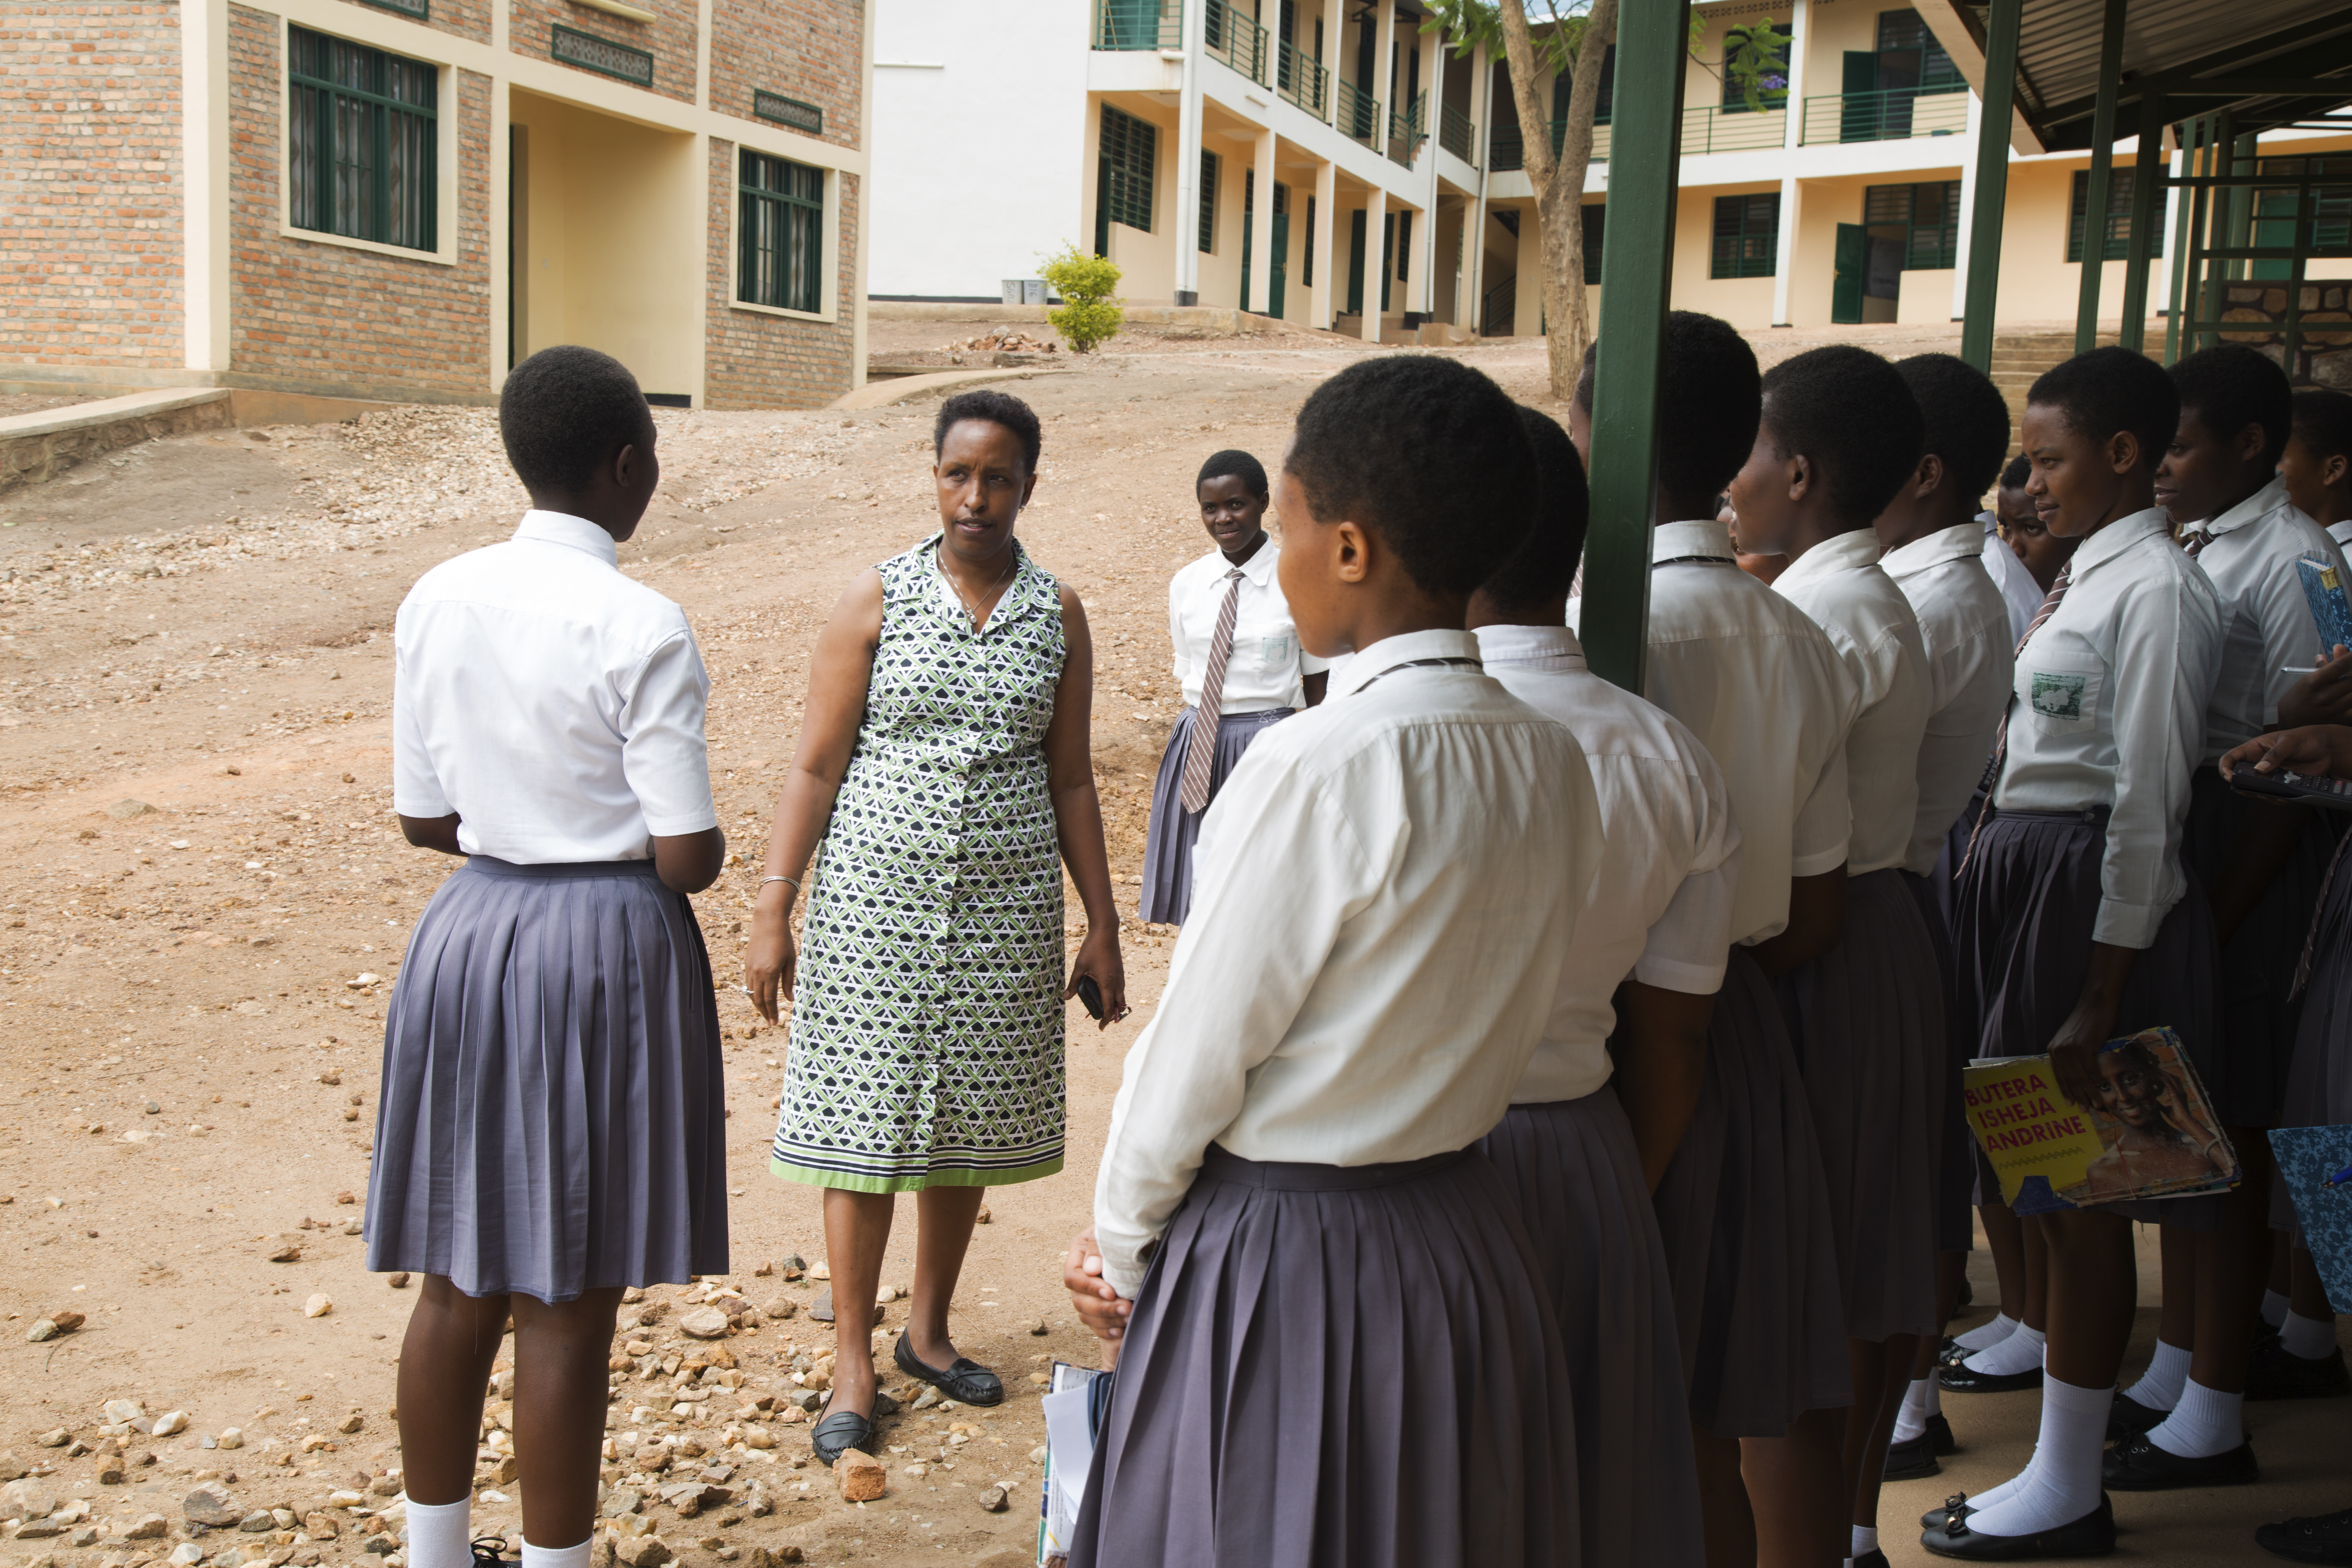 Josephine Kobusingye, an education activist, mentors a group of female science students. She says supporting them is crucial because many of them are facing dificult family situations.